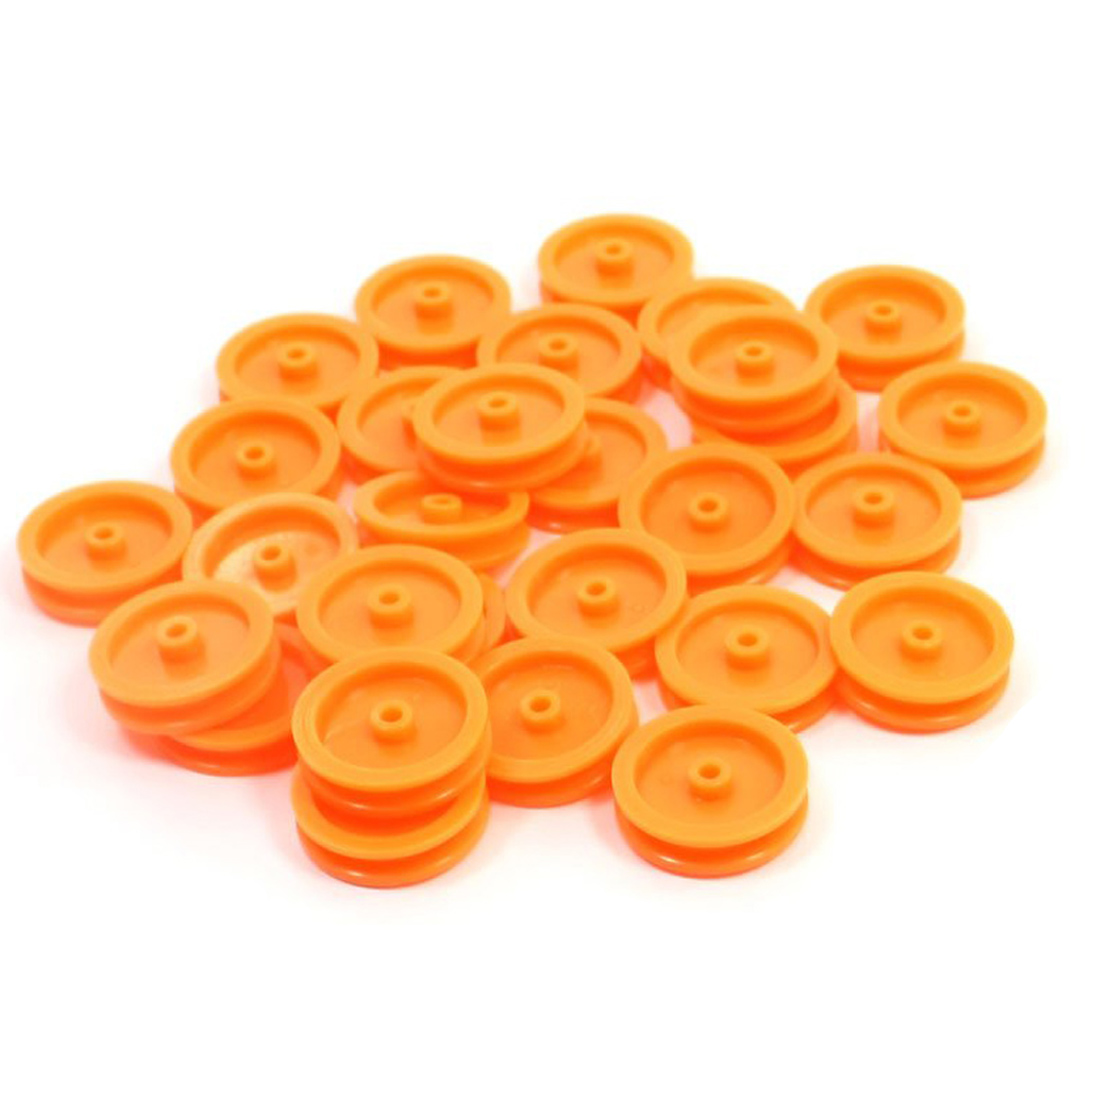 30 Pcs 2mm Hole Orange Plastic Belt <font><b>Pulley</b></font> for DIY RC Toy <font><b>Car</b></font> Airplane image